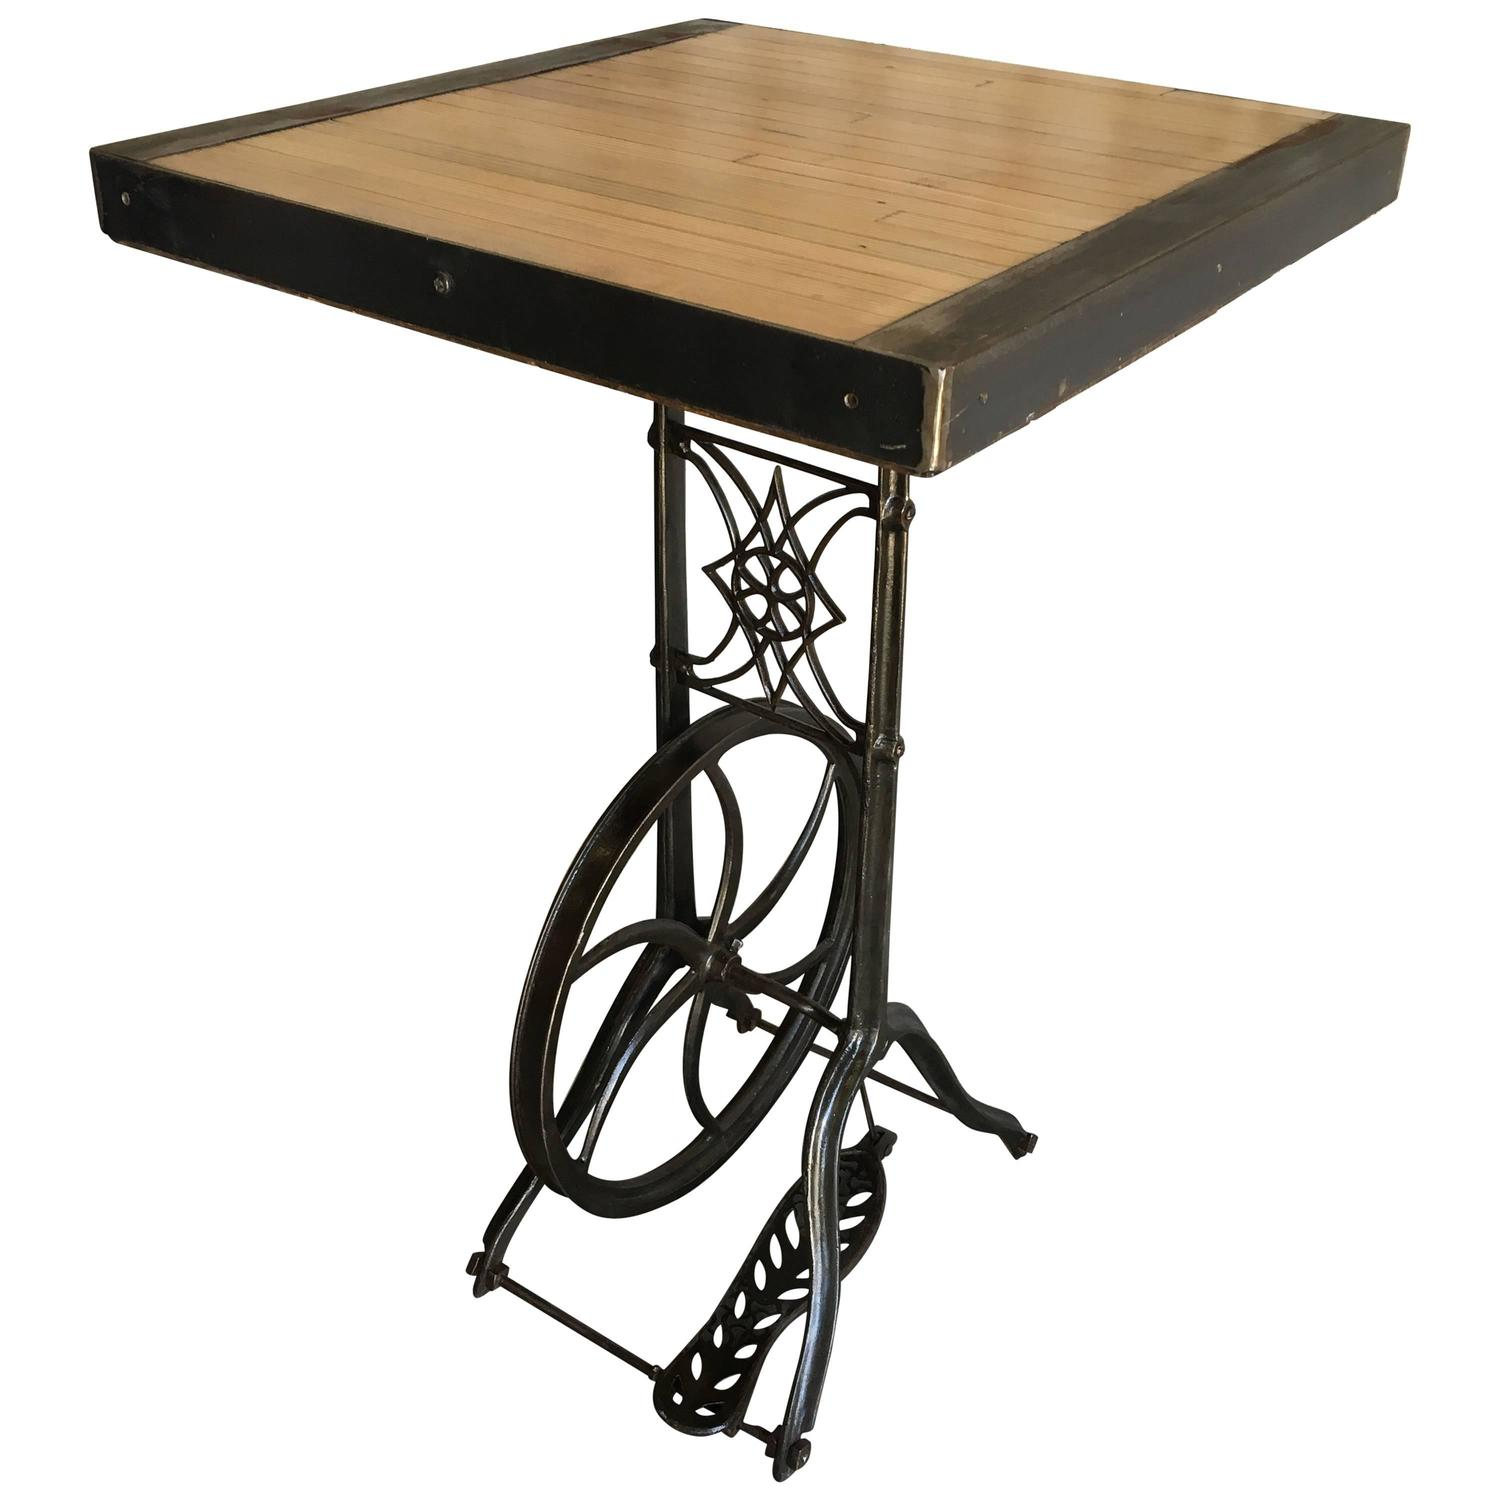 High Tables For Sale: Hightop Table On Industrial Base For Sale At 1stdibs